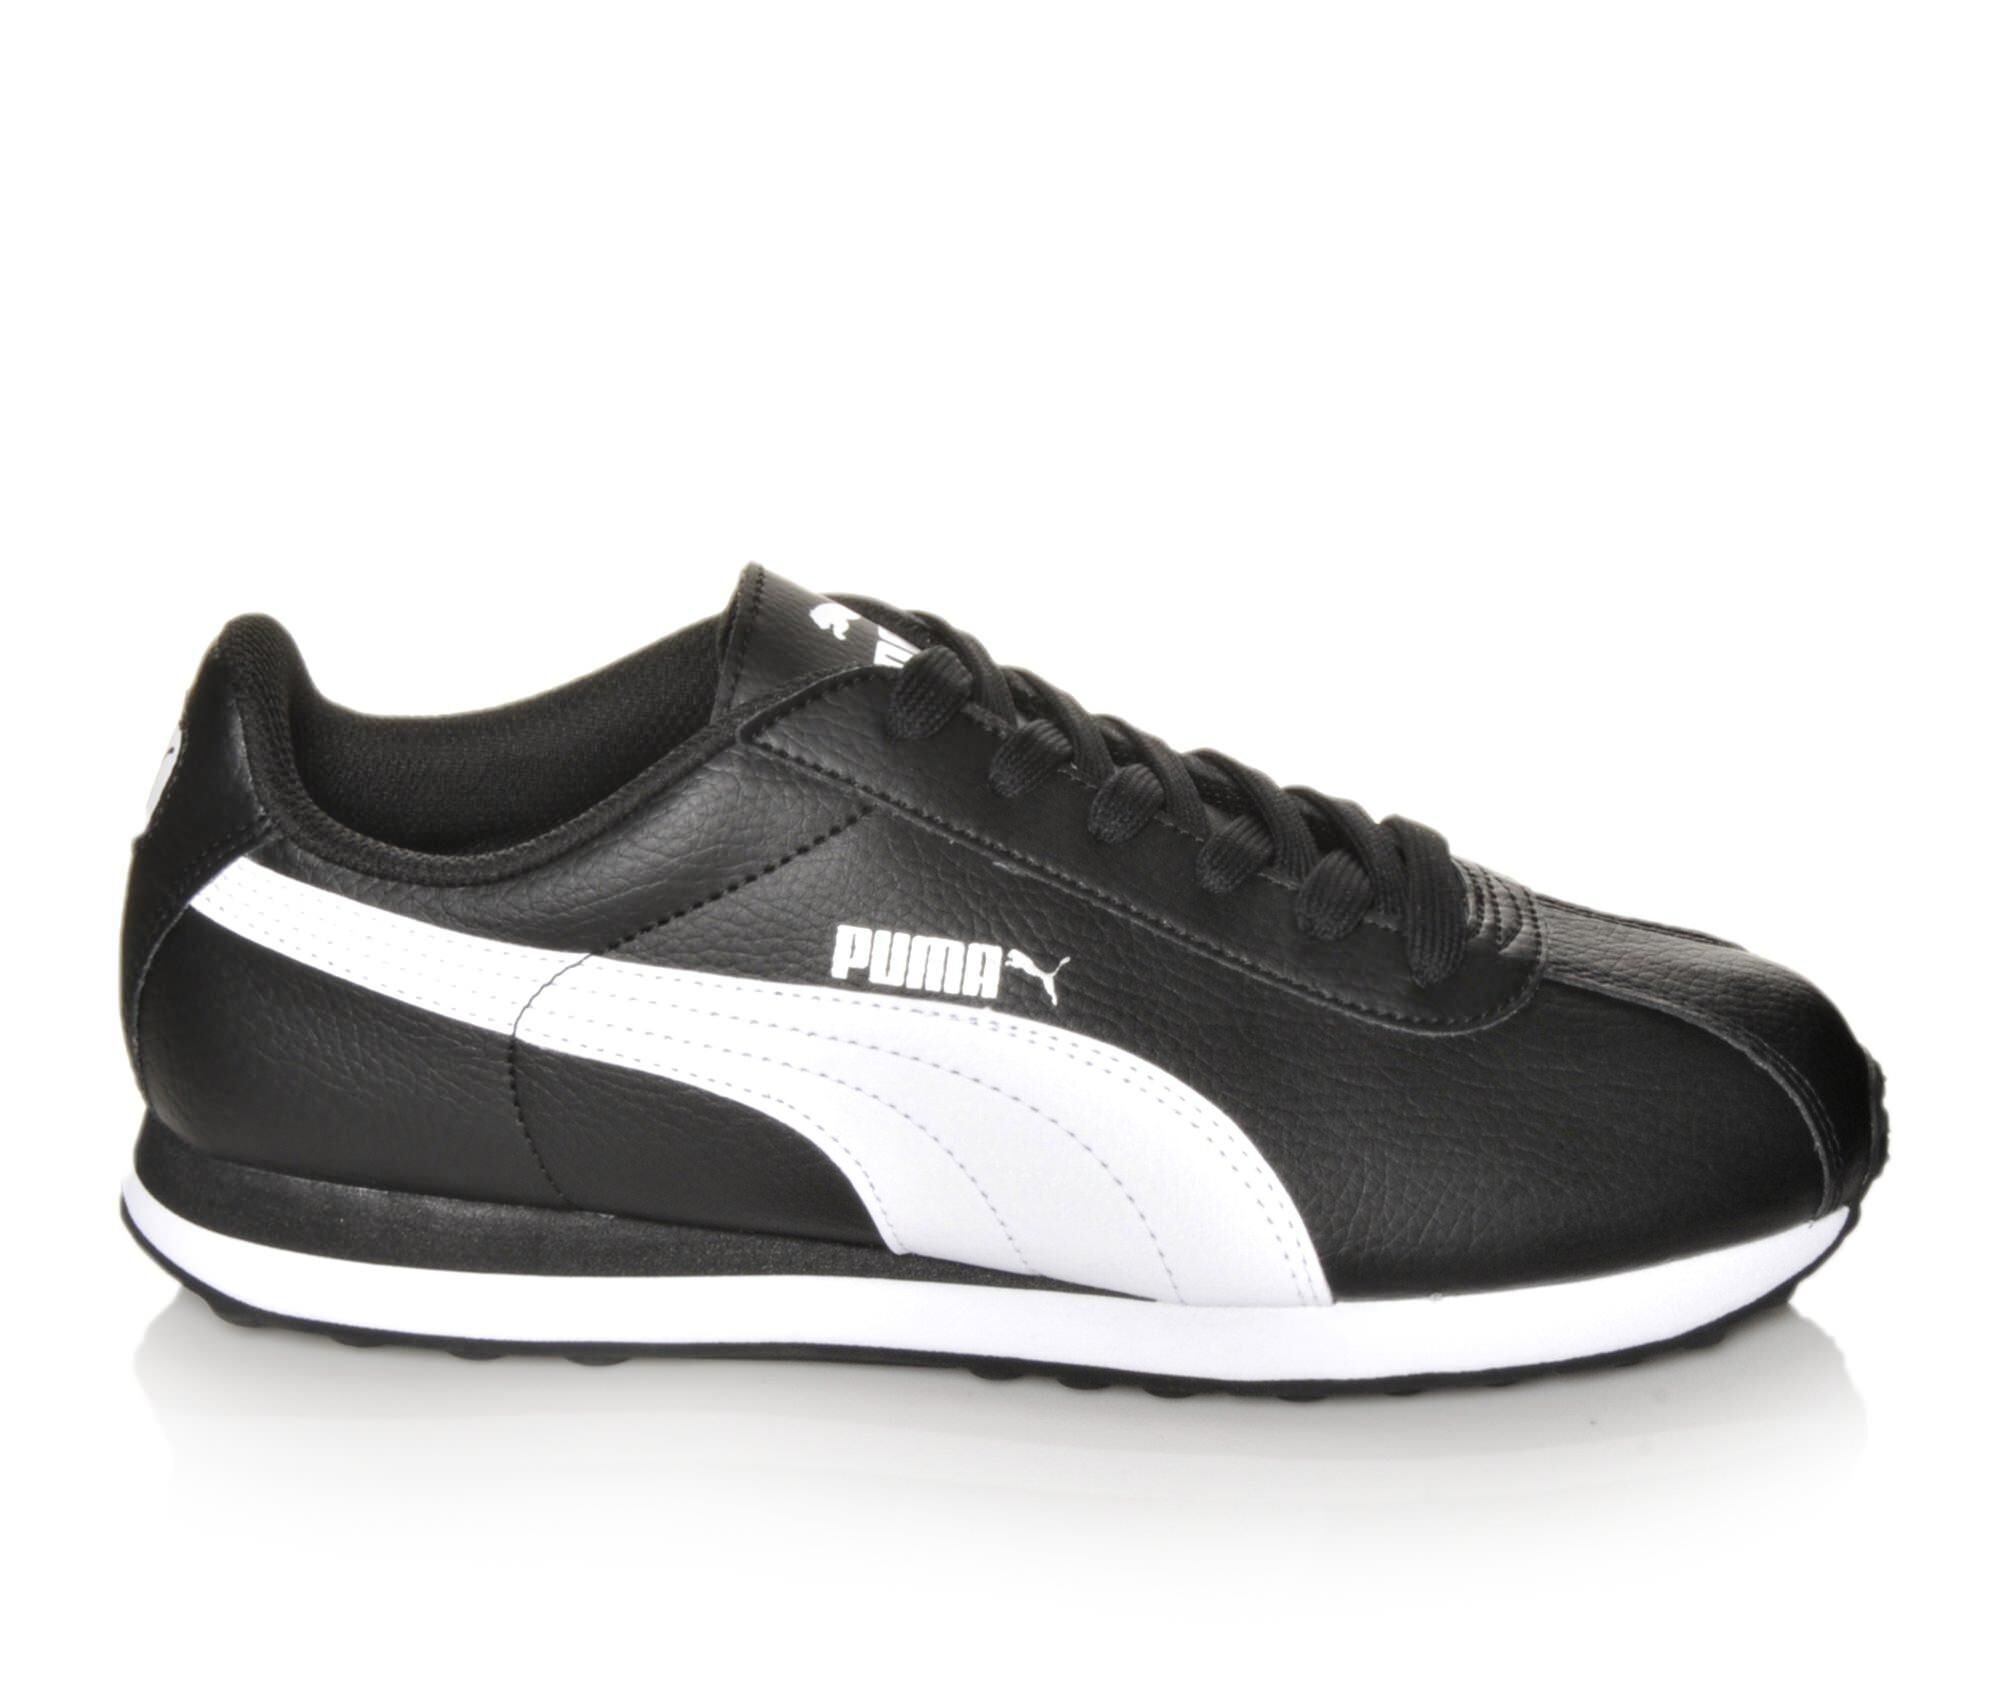 Images. Men's Puma Turin Sneakers